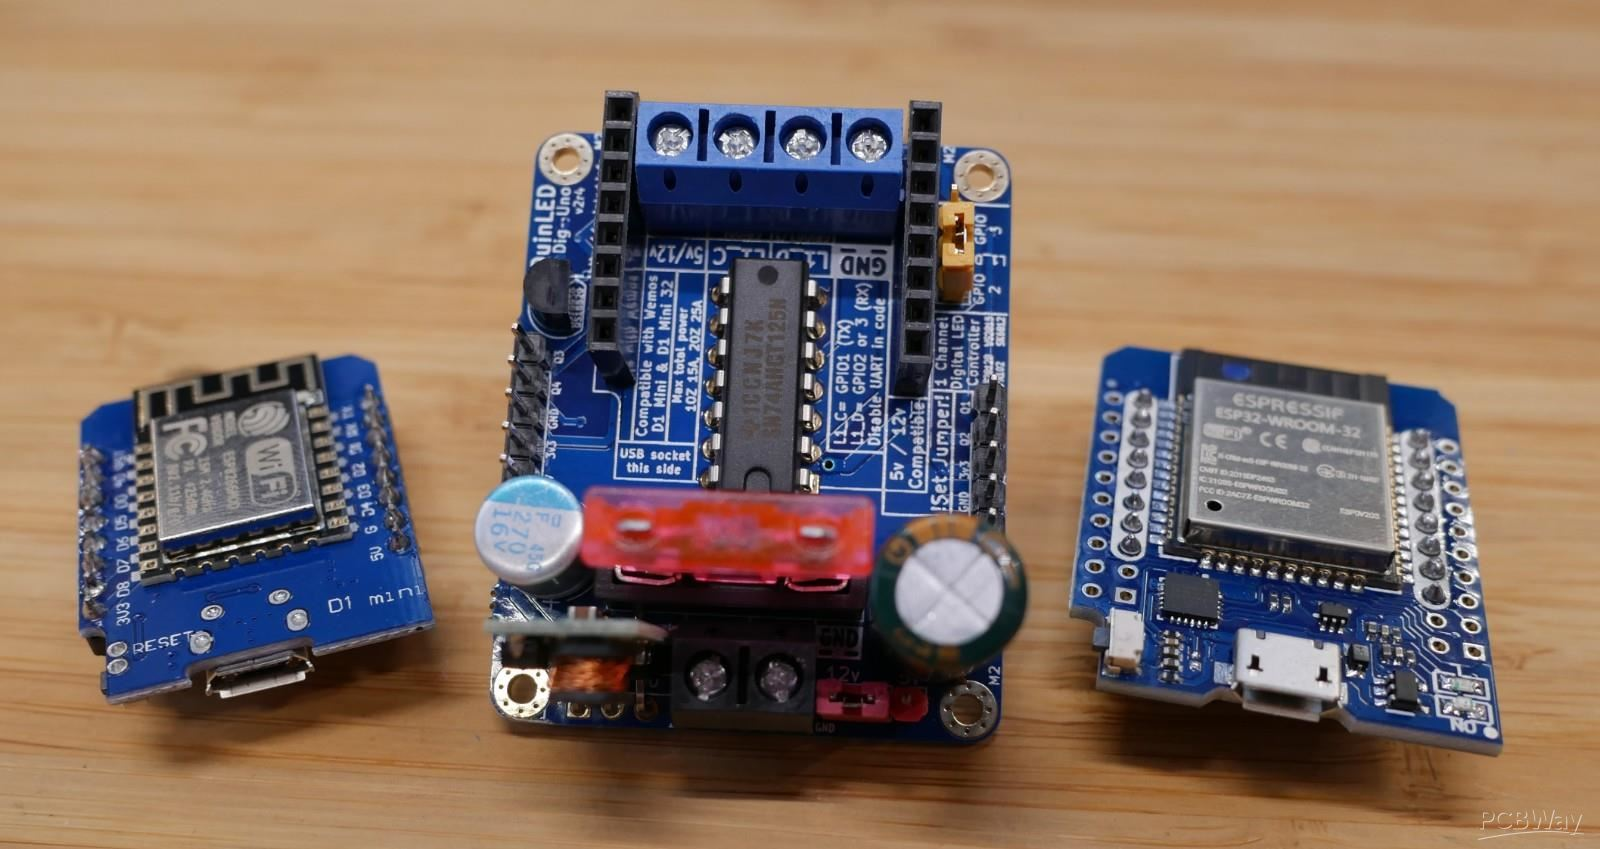 QuinLED-Dig-Uno - Share Project - PCBWay